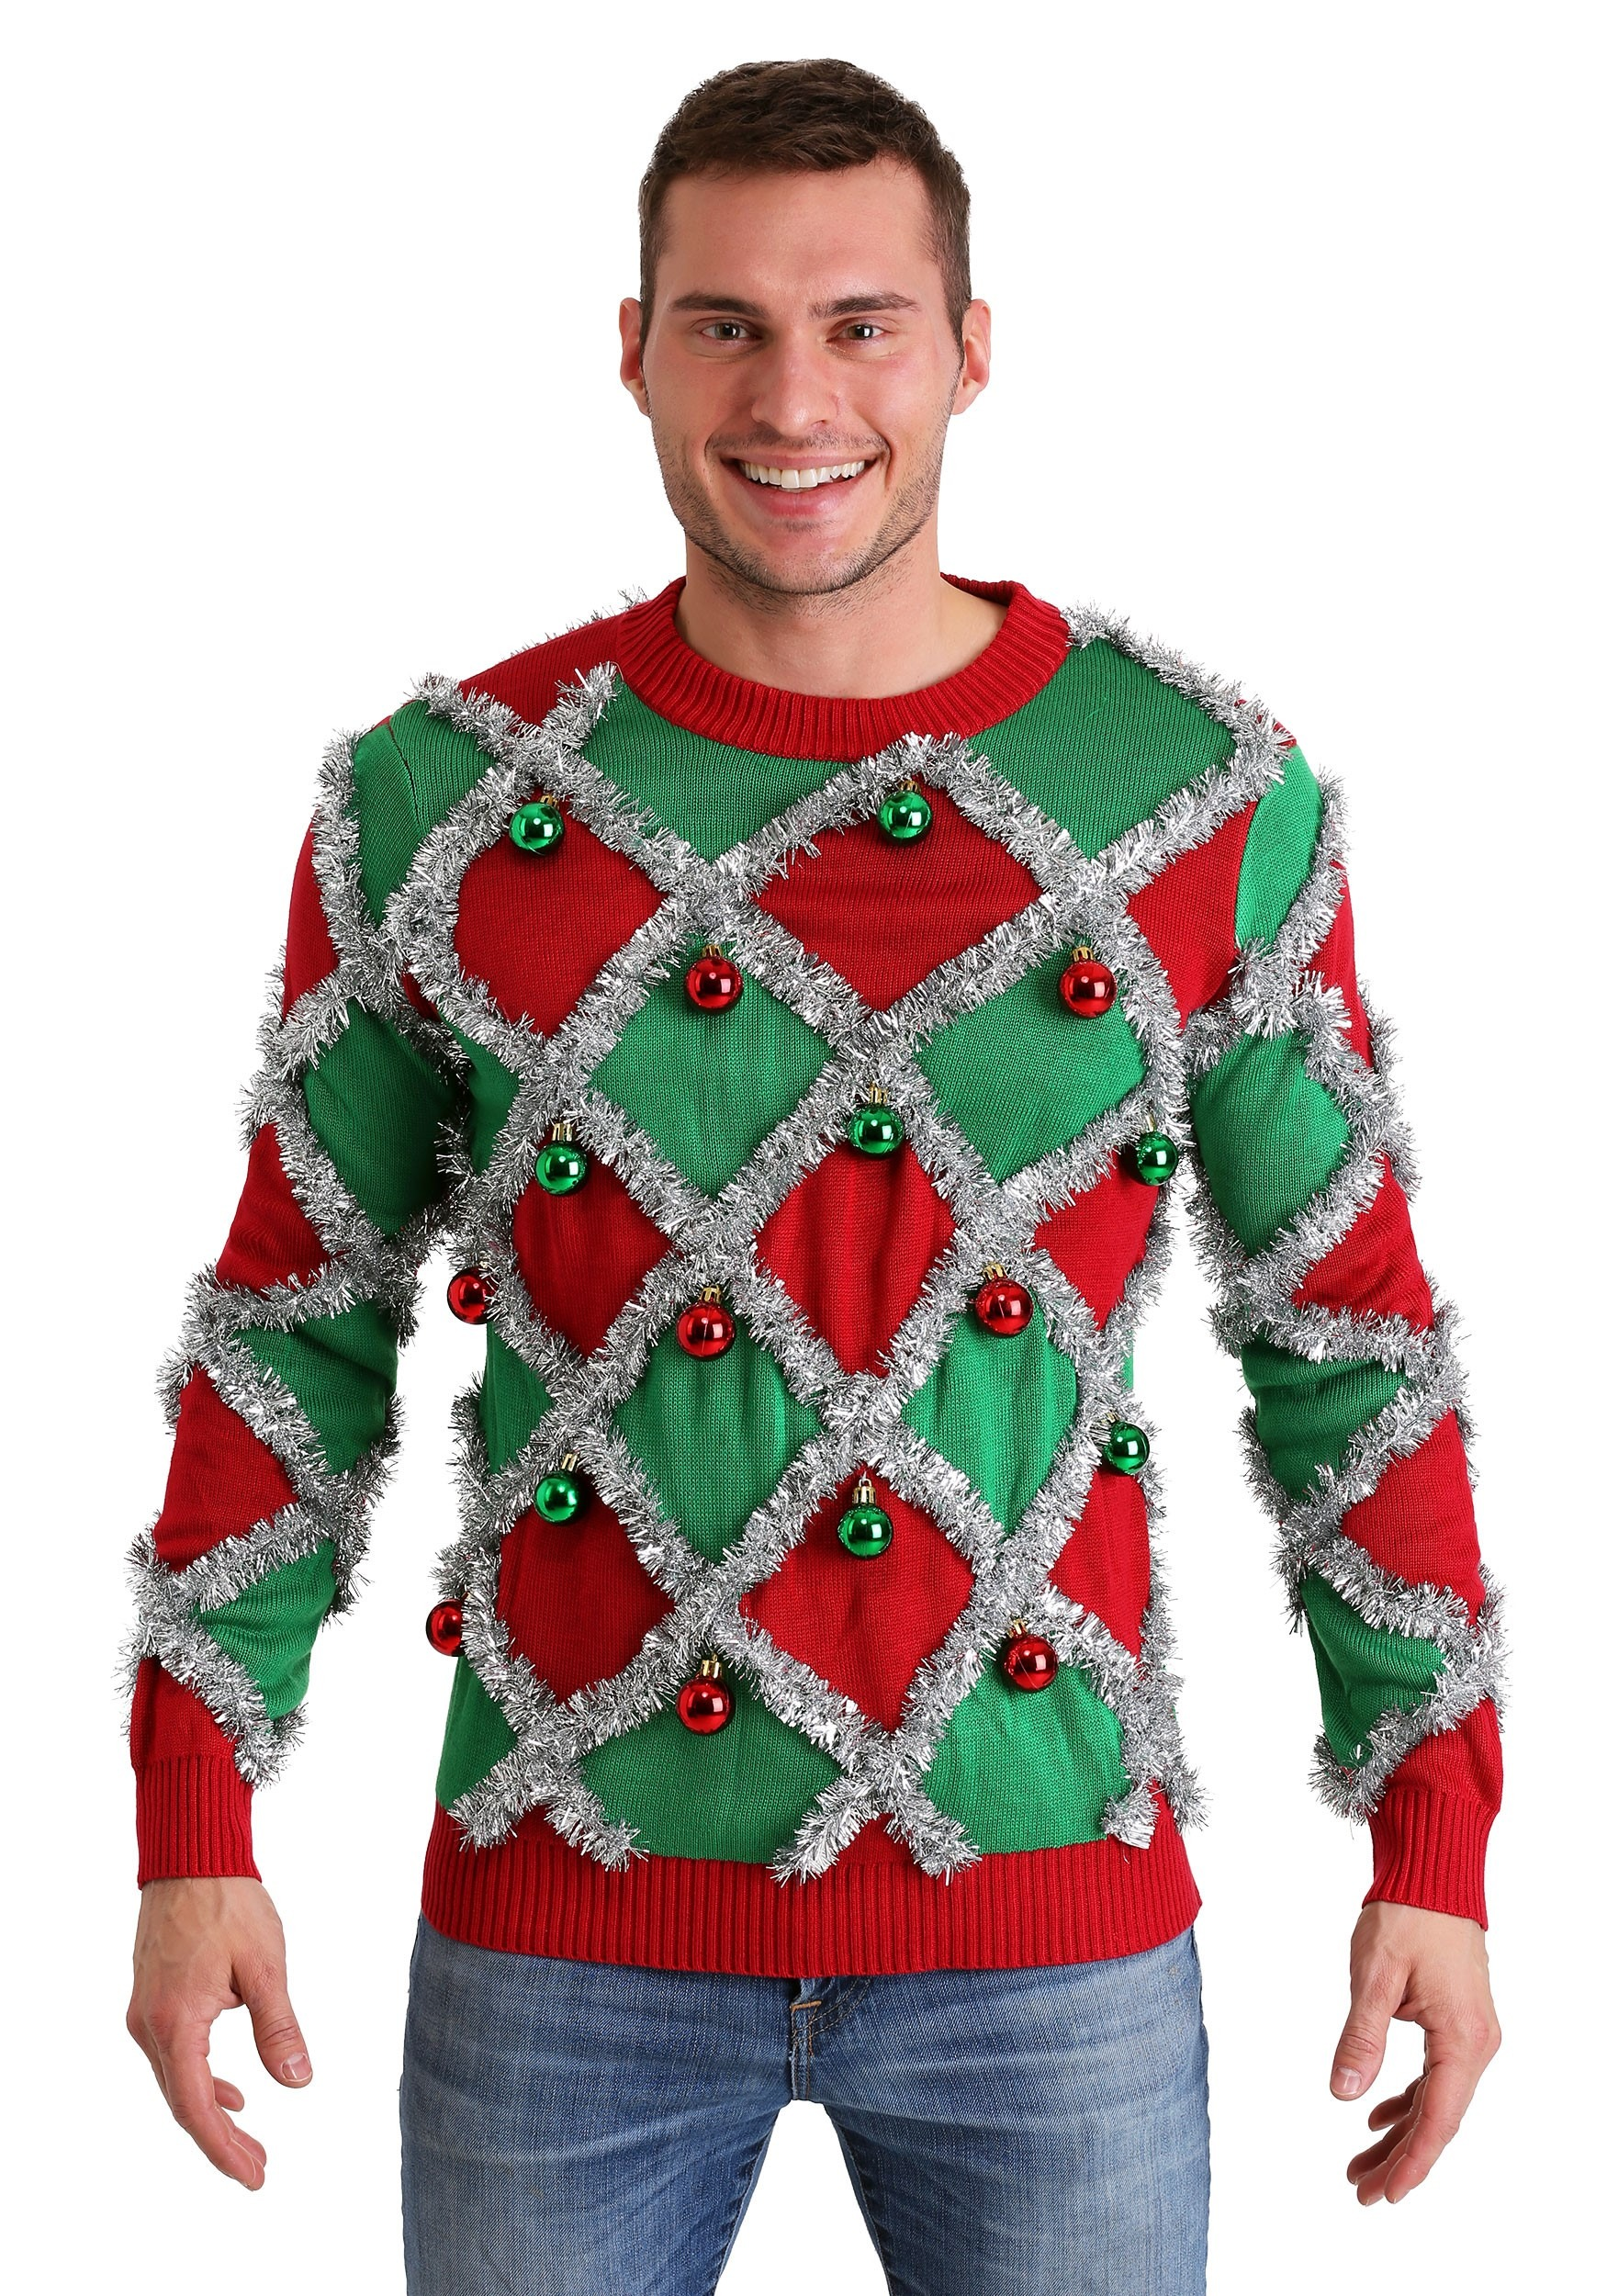 bd6541d8731 Tipsy Elves Diamond Tinsel Men s Ugly Christmas Sweater